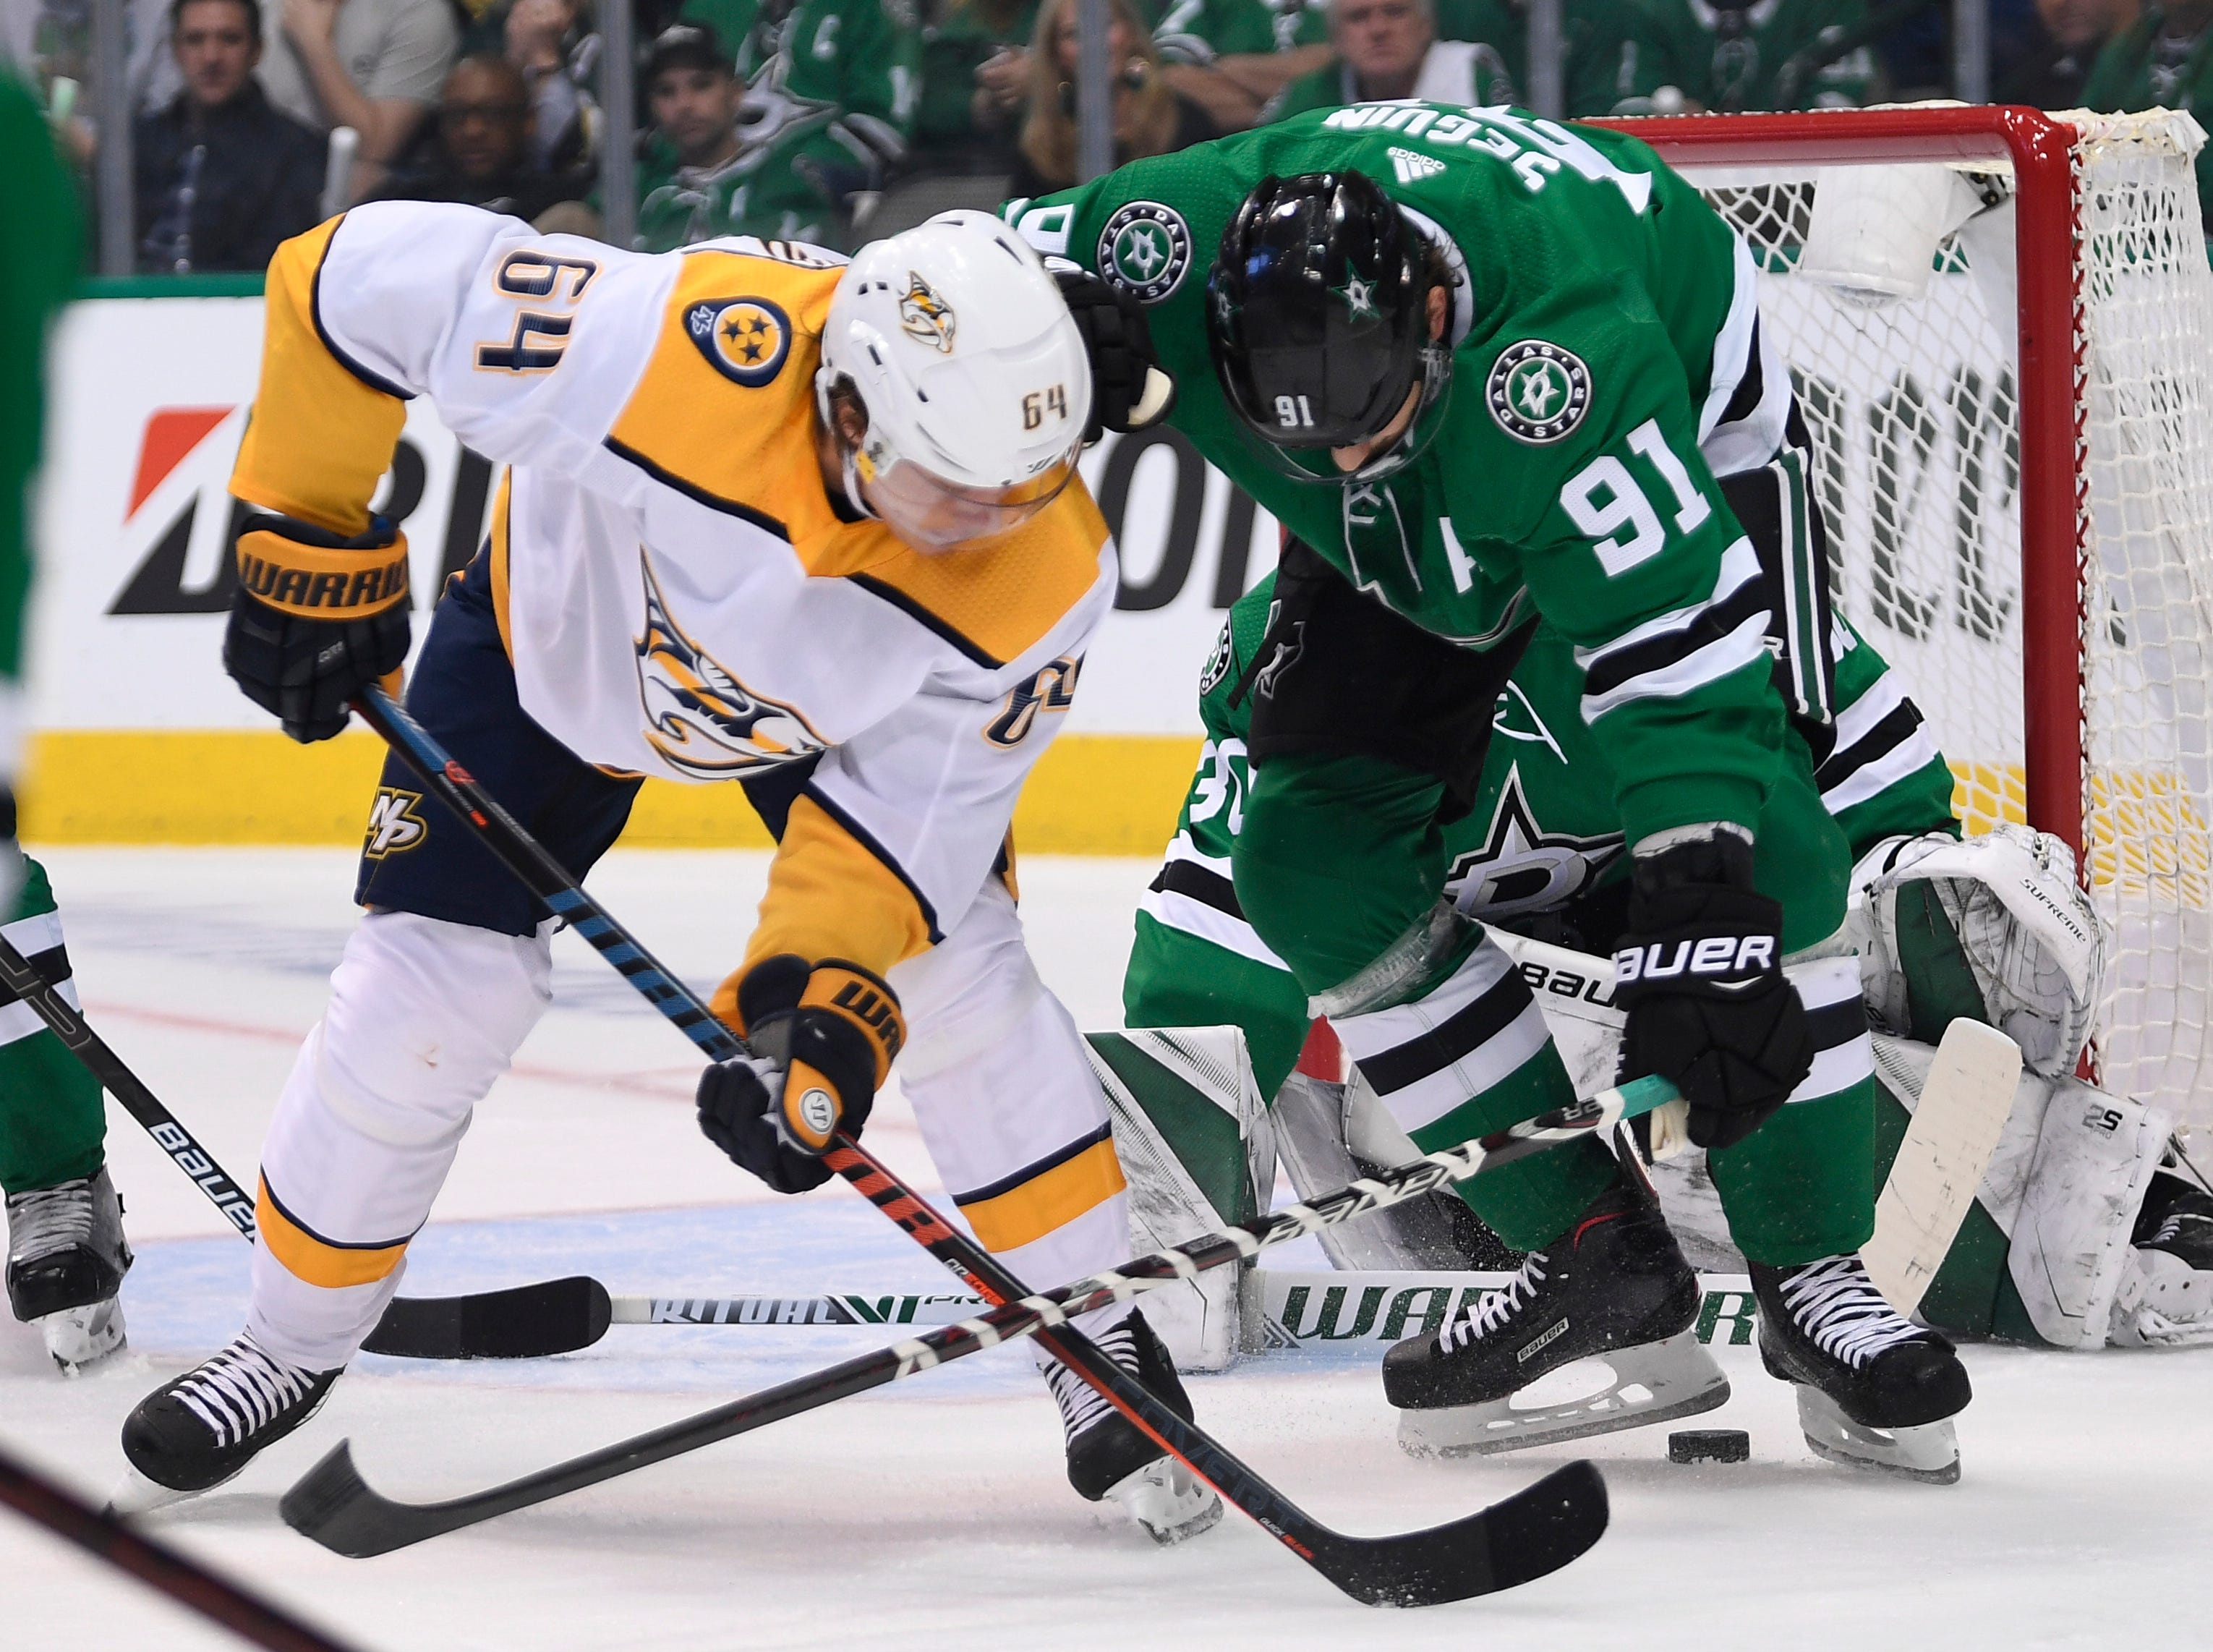 Nashville Predators center Mikael Granlund (64) tries to move the puck under Dallas Stars center Tyler Seguin (91) during the first period of the divisional semifinal game at the American Airlines Center in Dallas, Texas., Monday, April 15, 2019.